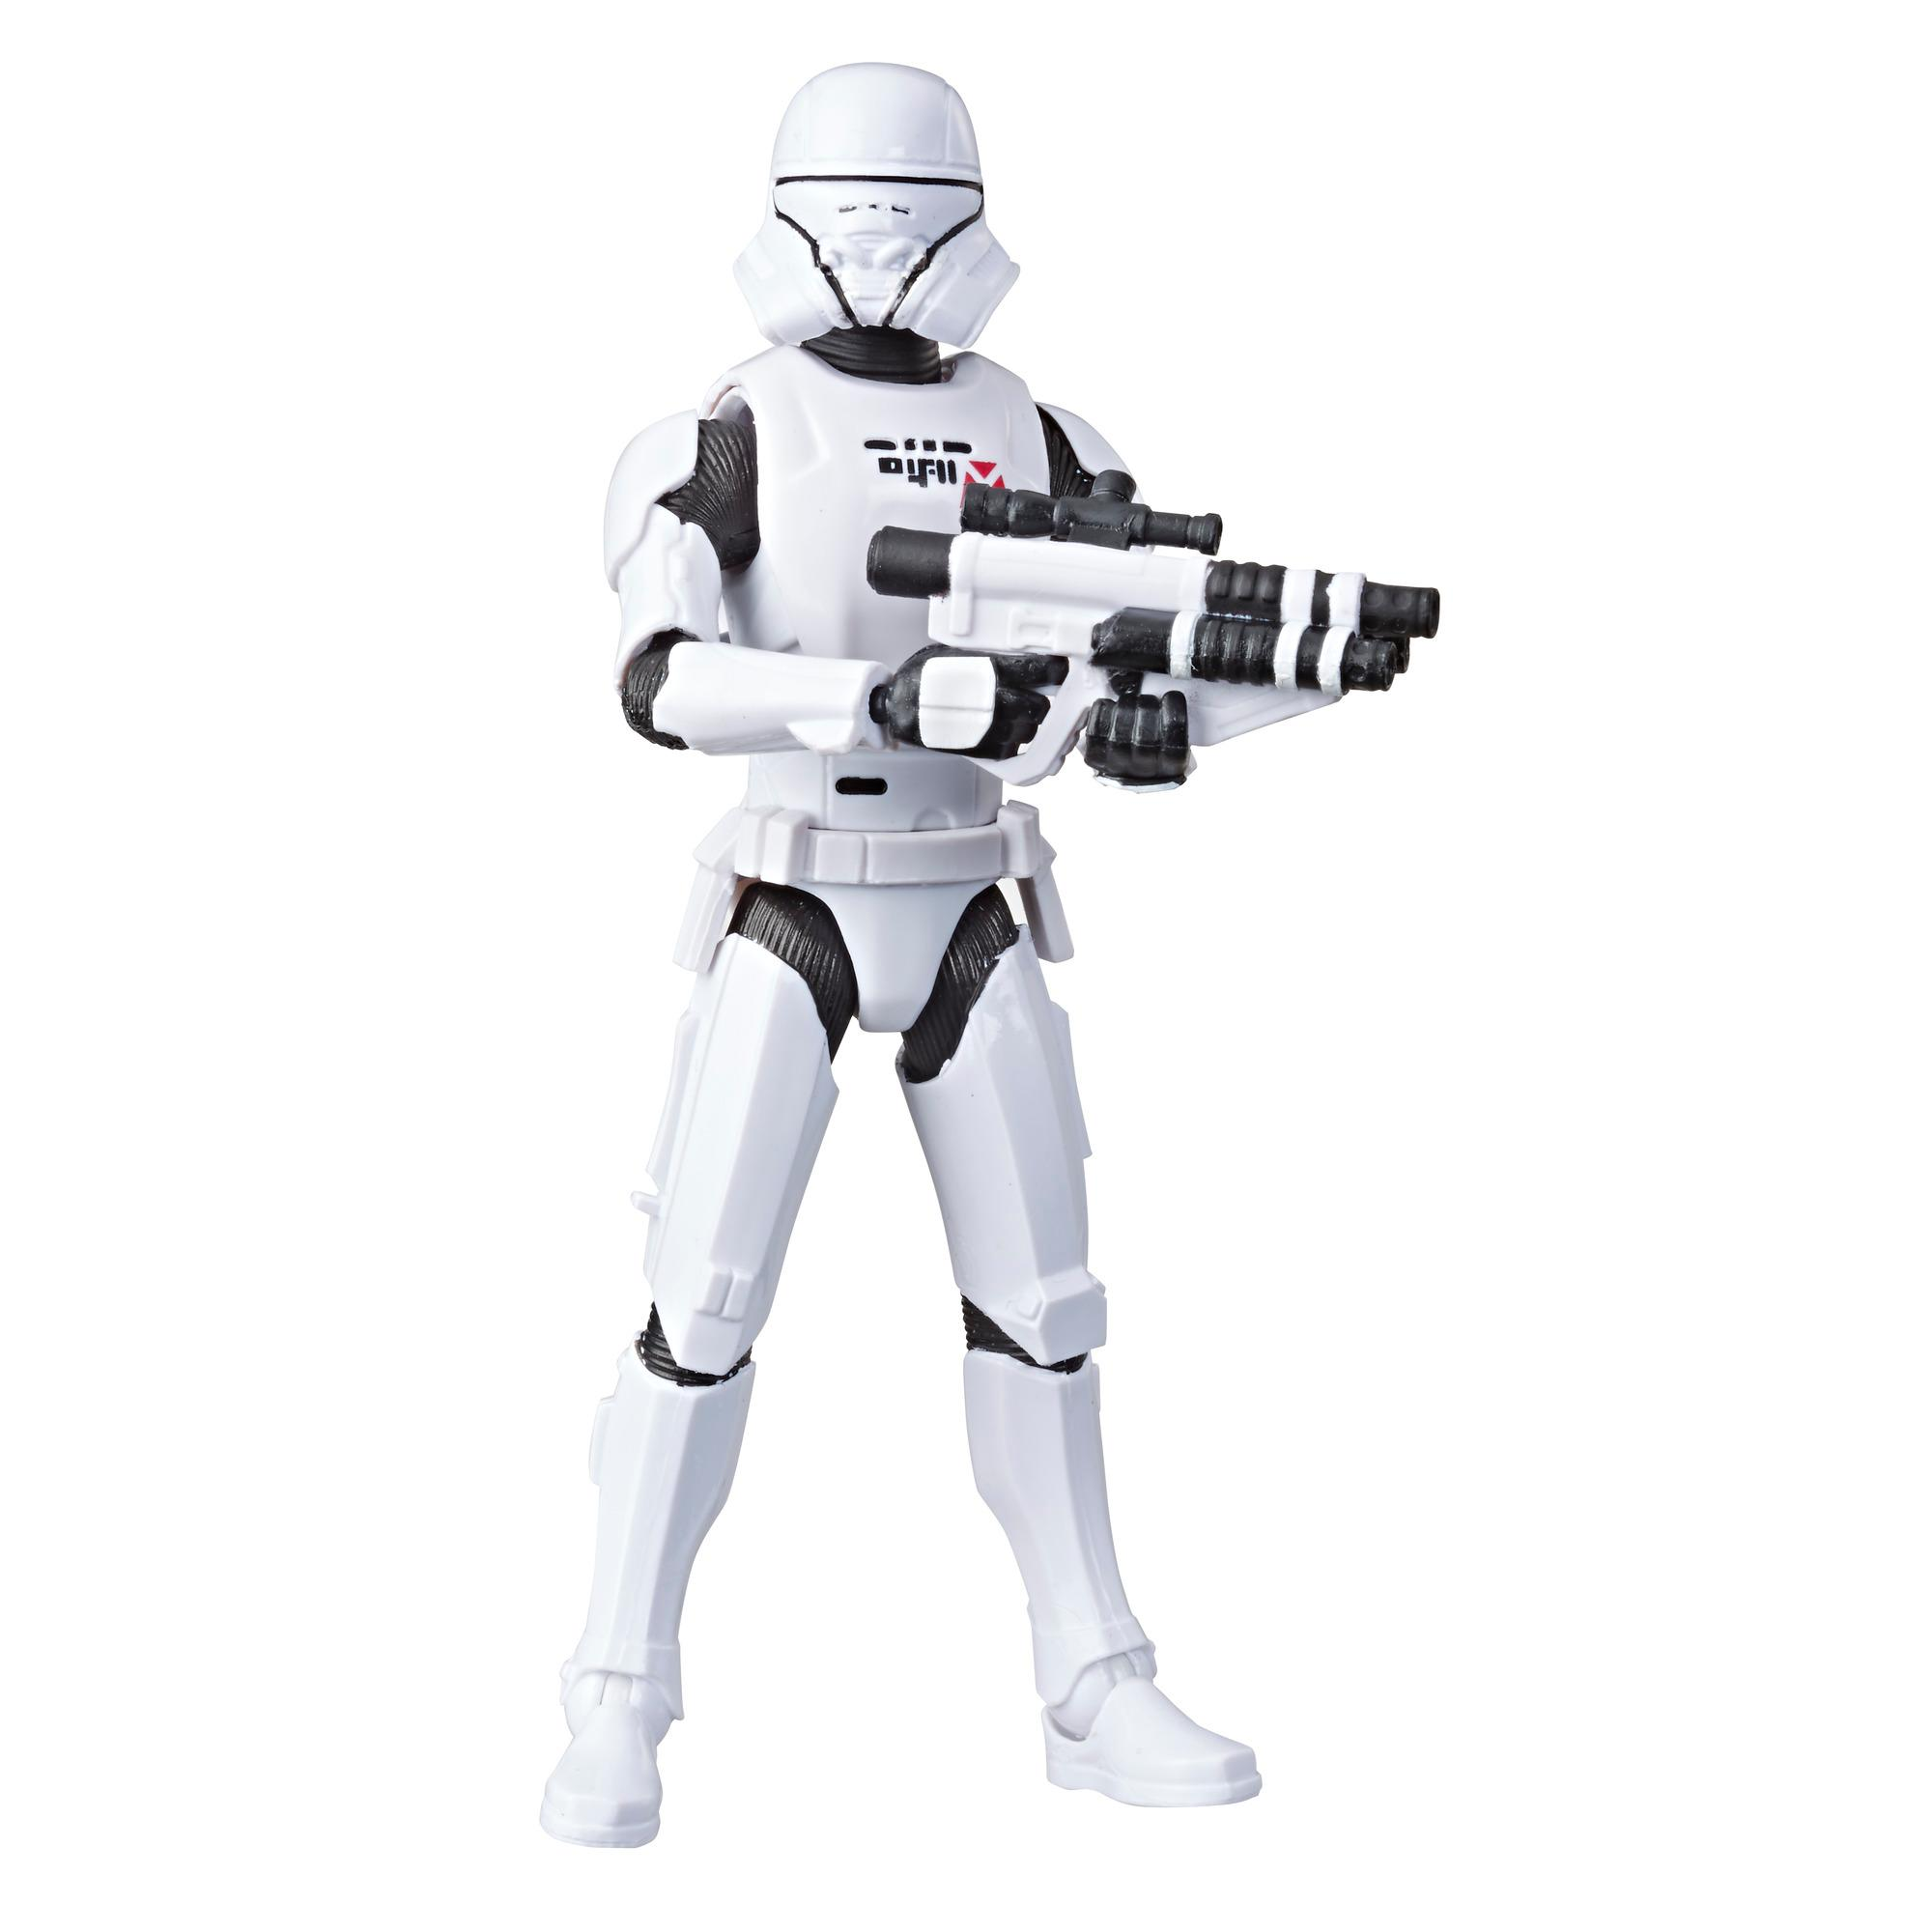 Star Wars Galaxy of Adventures Jet Trooper 5-Inch-Scale Action Figure Toy